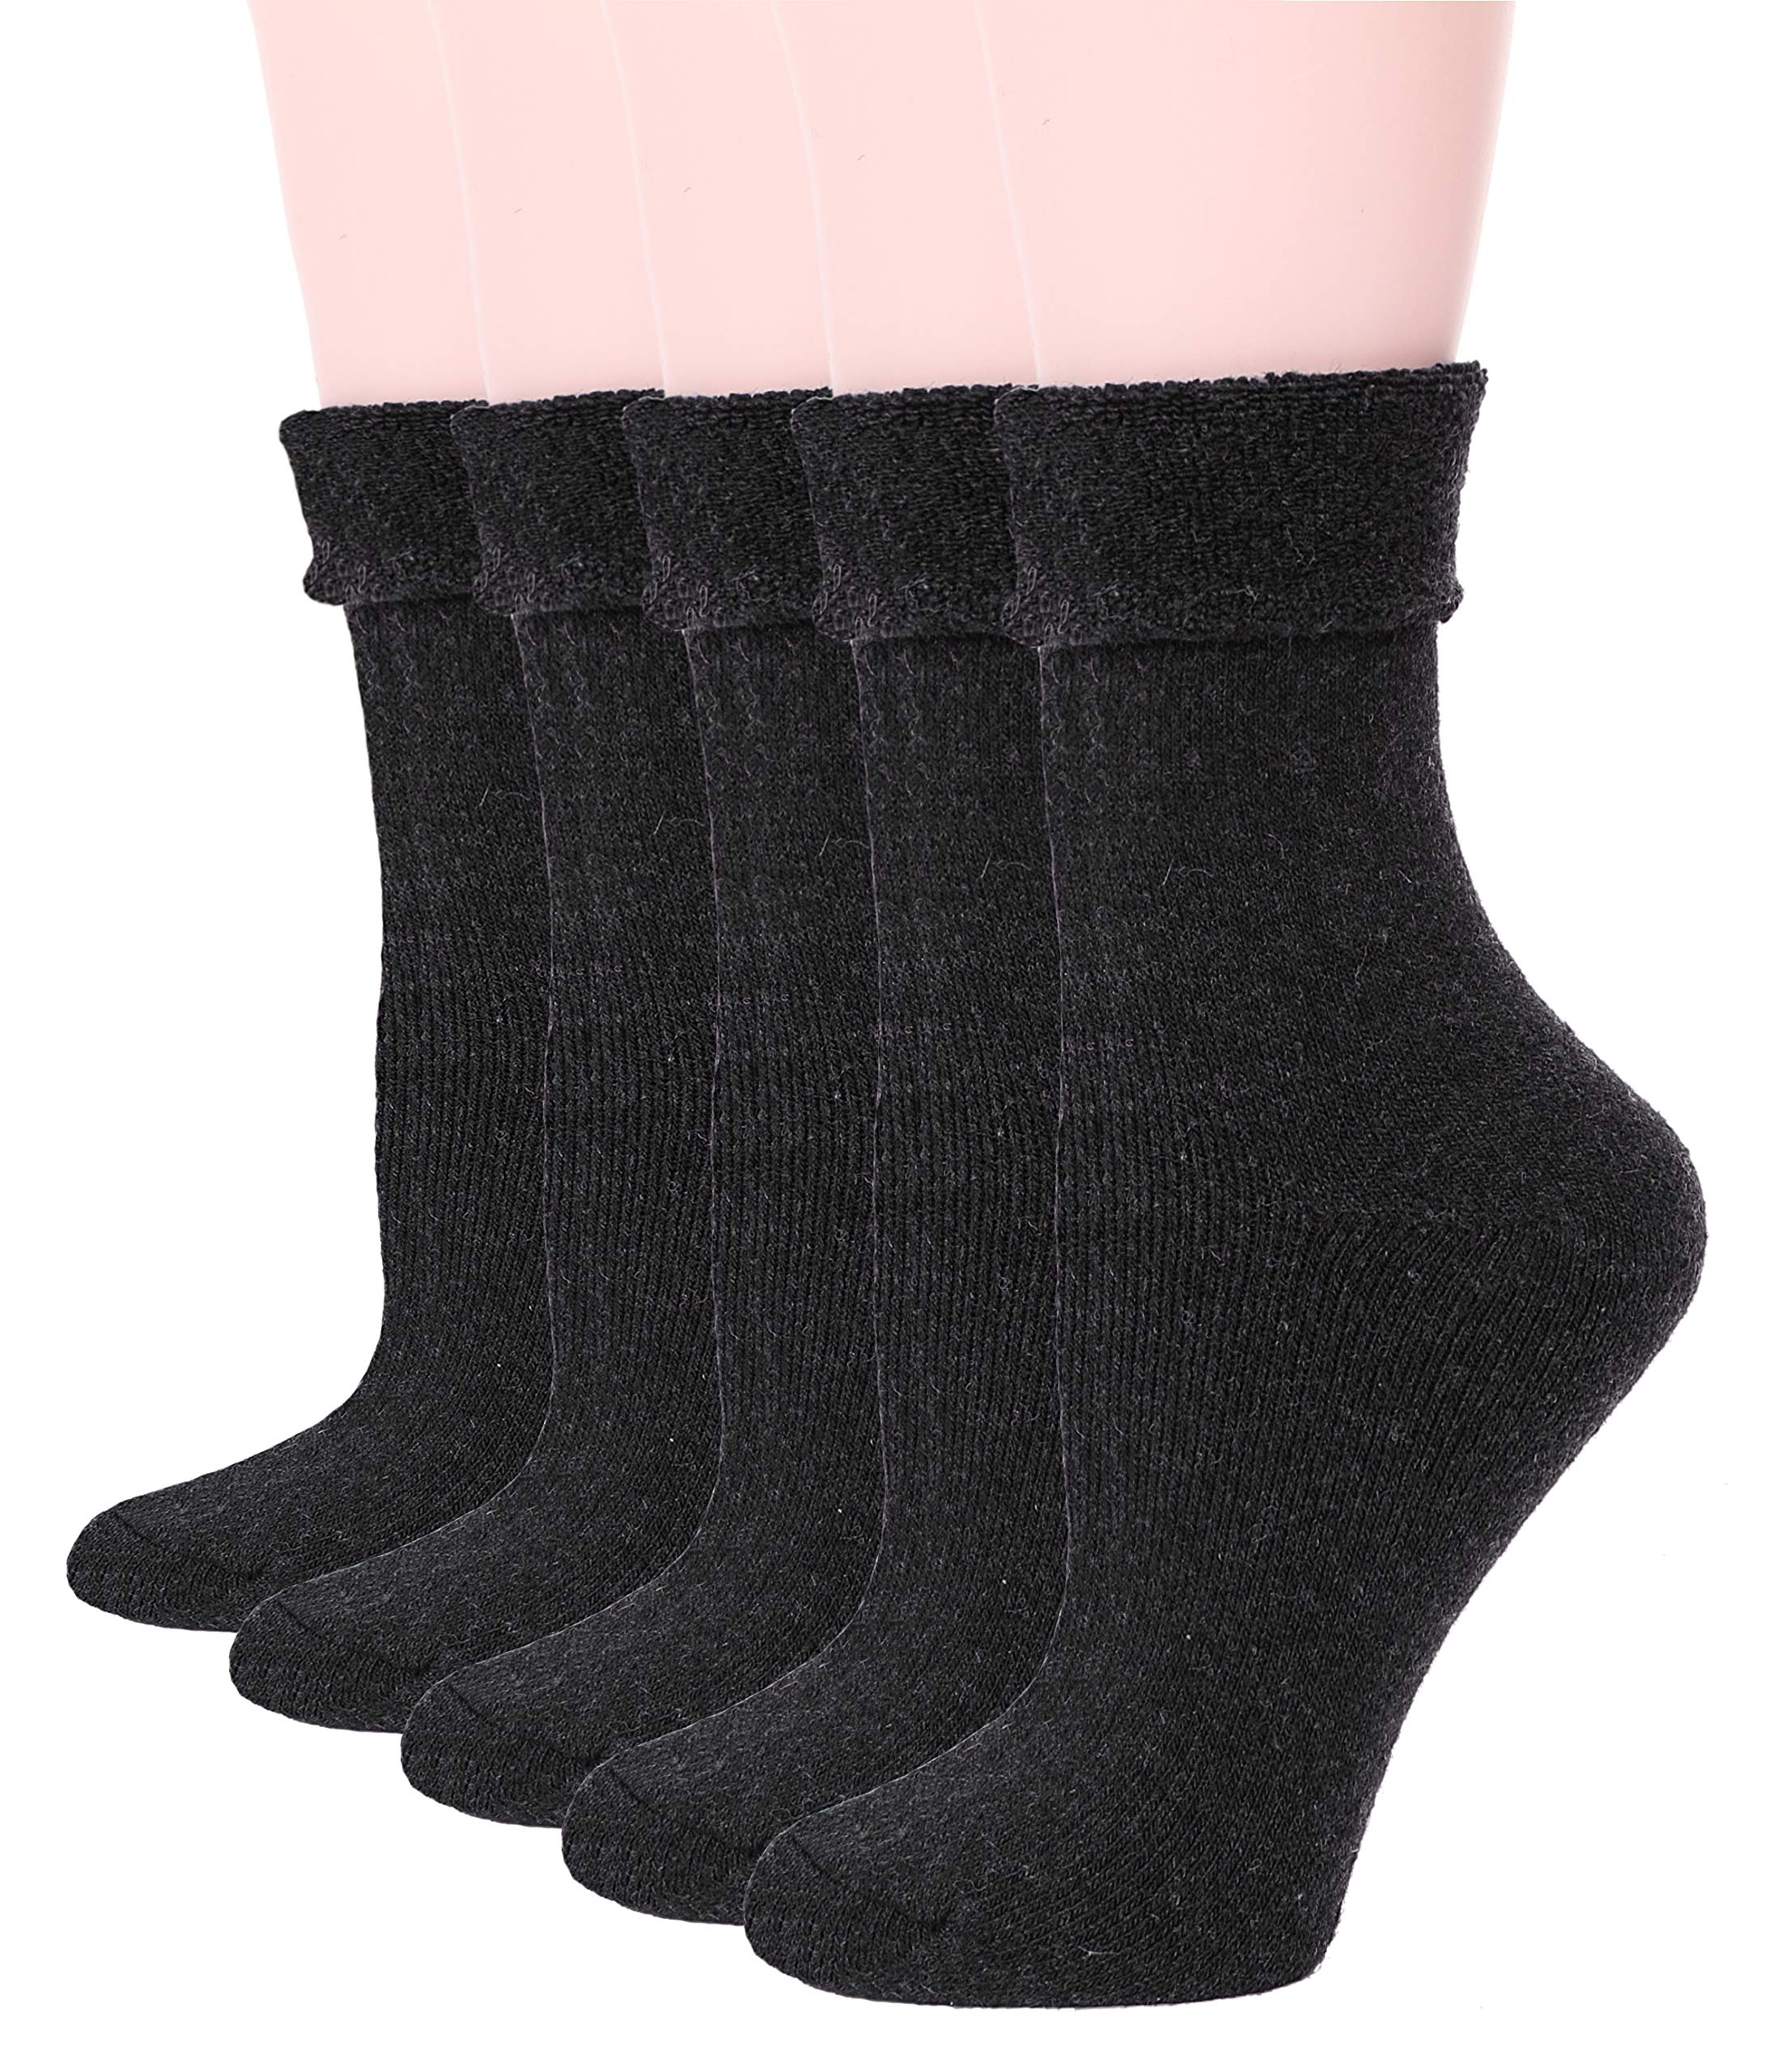 EBMORE Womens Wool Fuzzy Socks Thick Warm Thermal Winter Fleece lined Crew Socks 5 pack (Dark Grey)